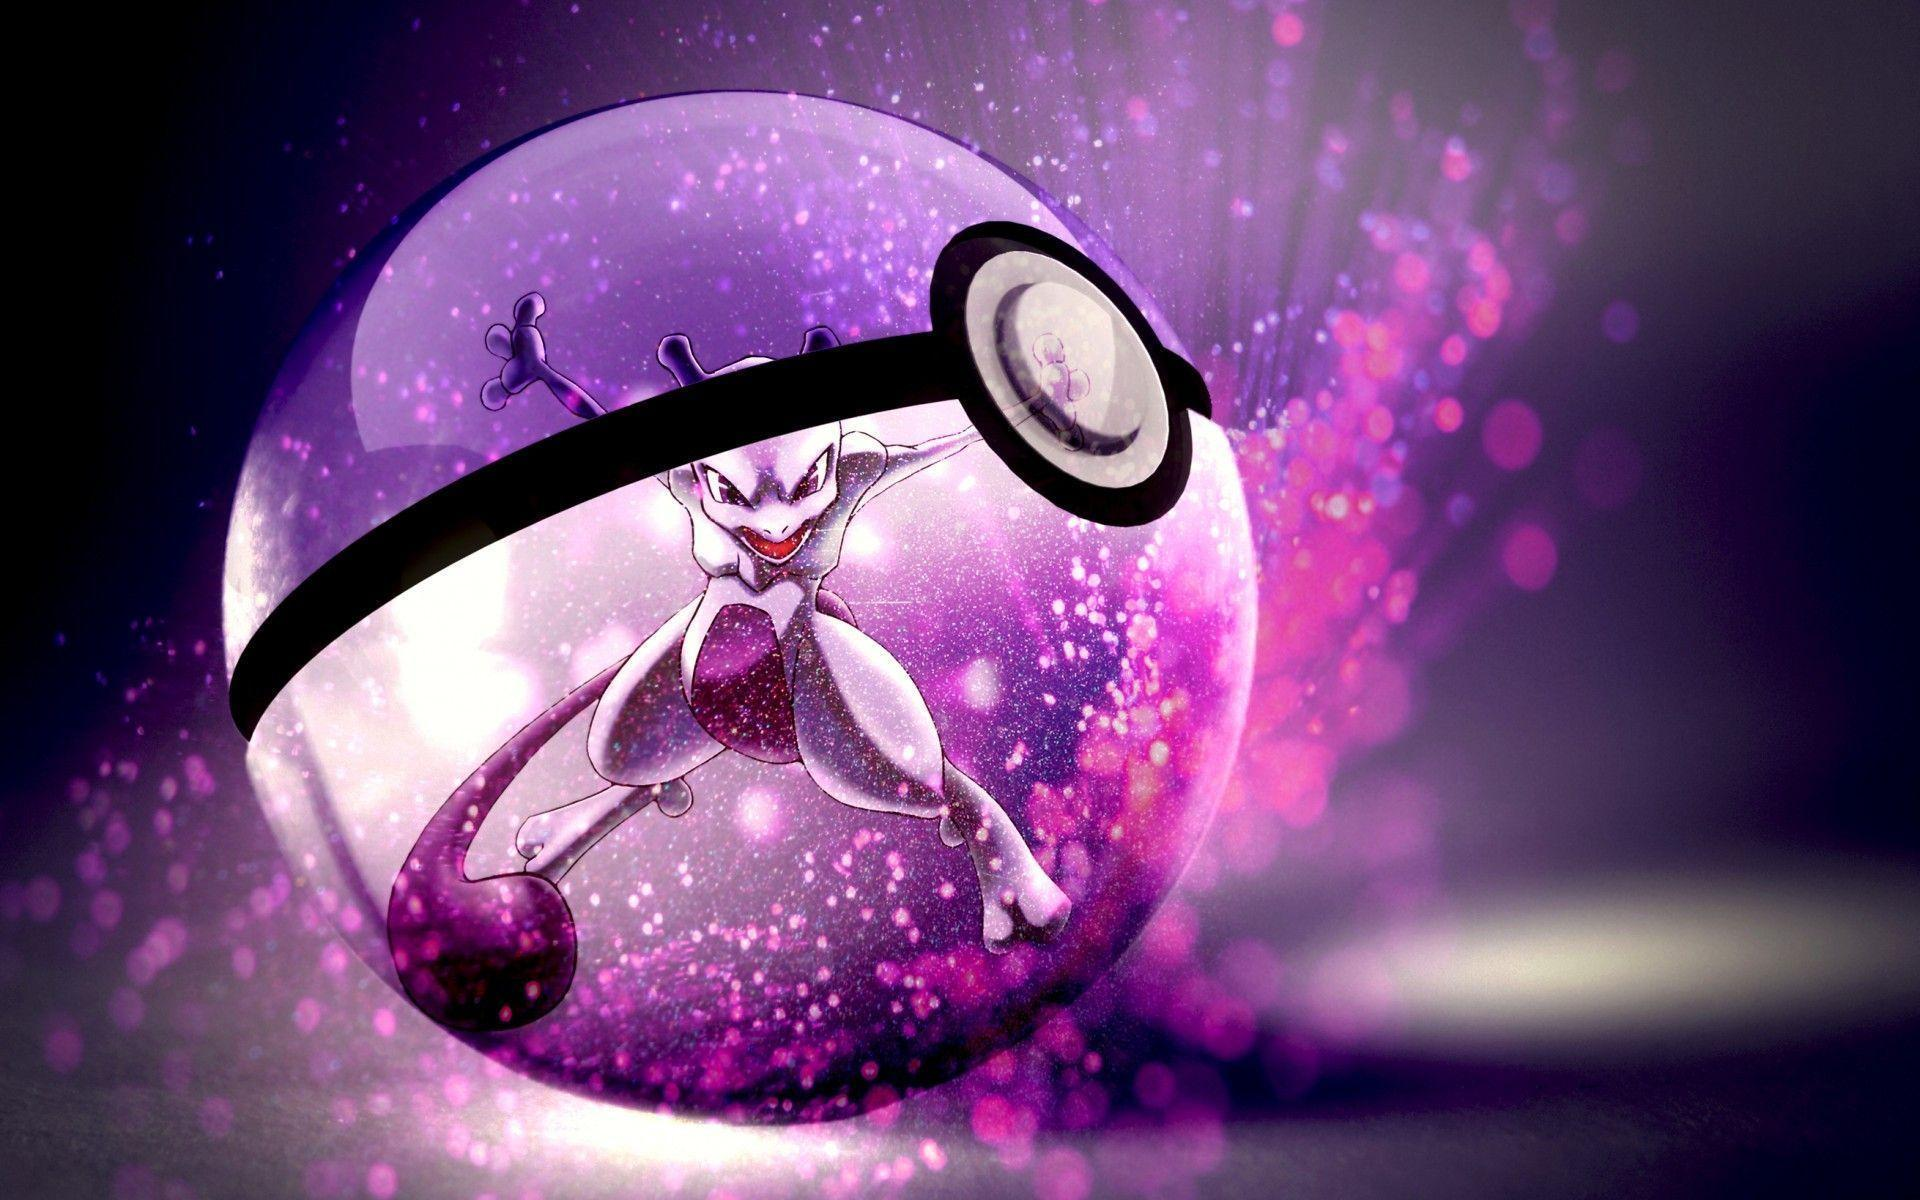 pokeball wallpaper pinterest - photo #24